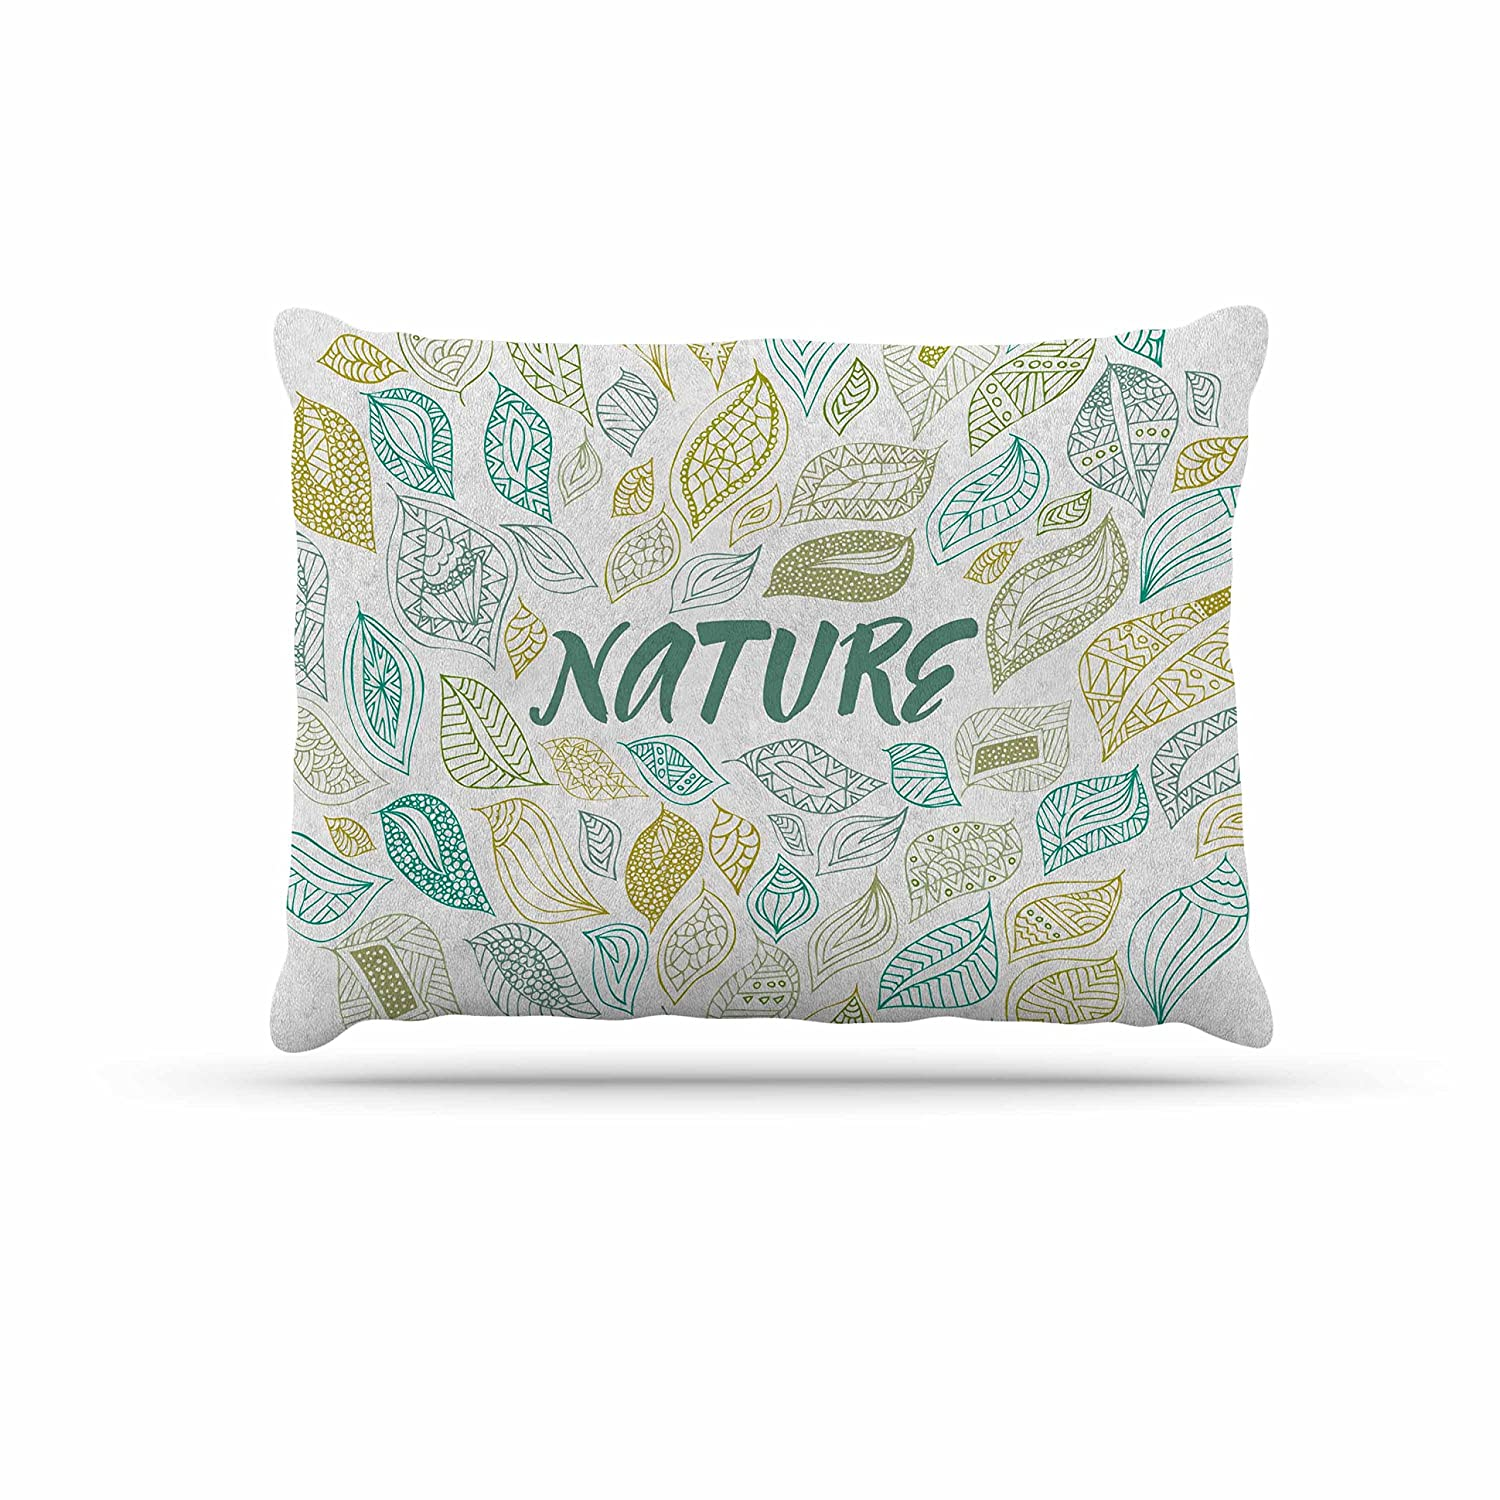 Kess InHouse Pom Graphic Design Nature Earth  White Teal Fleece Dog Bed, 30 by 40